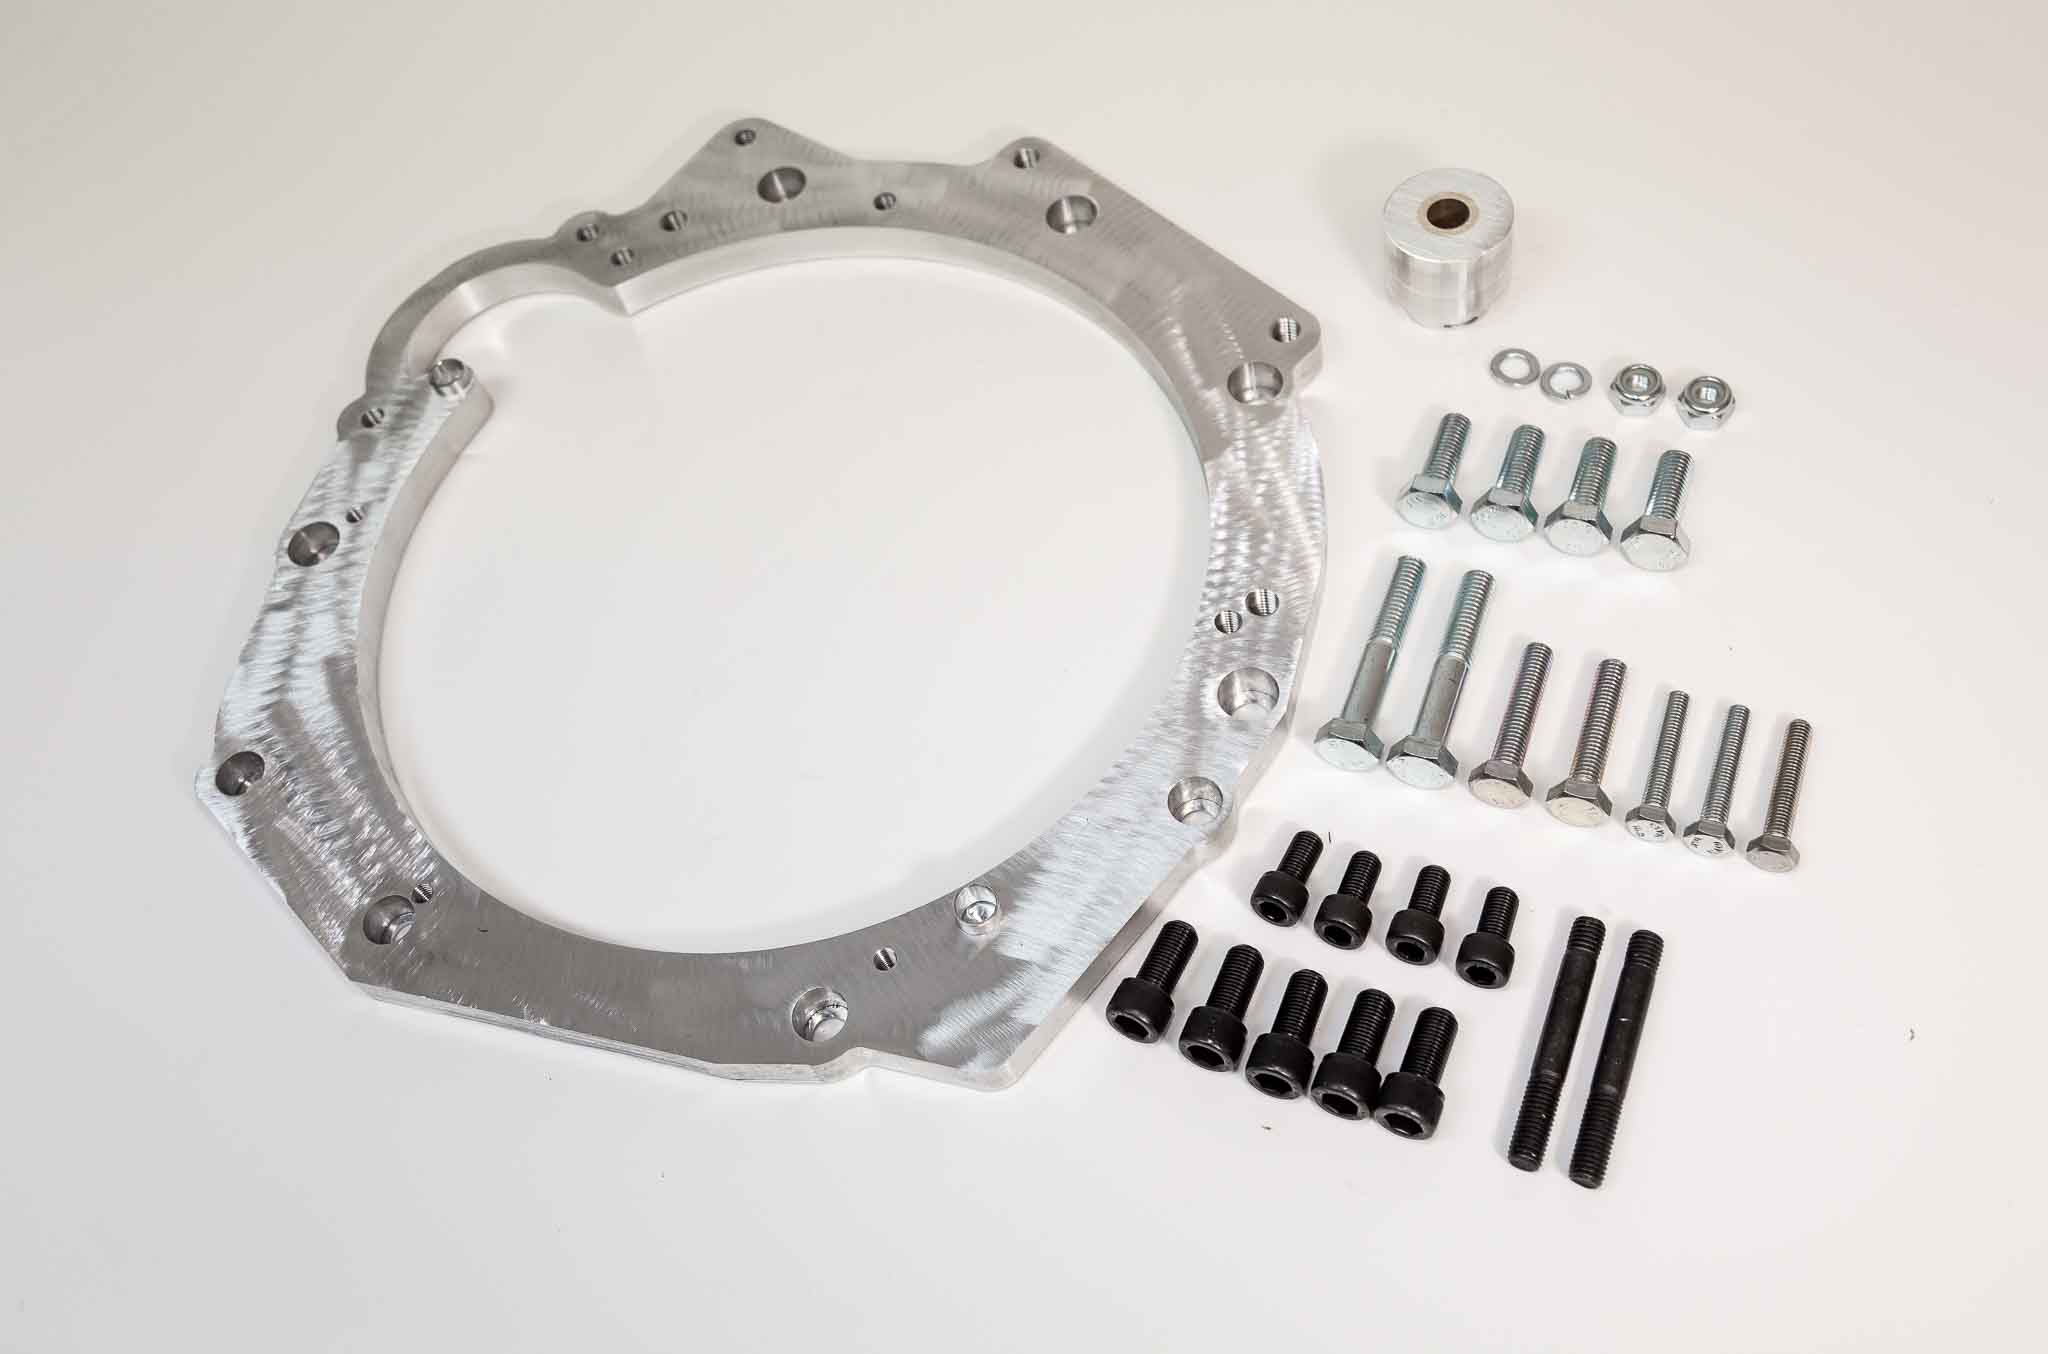 Autosports Engineering 2JZ 1JZ Engine to BMW ZF Getrag M3 Transmission  Adapter Plate Only